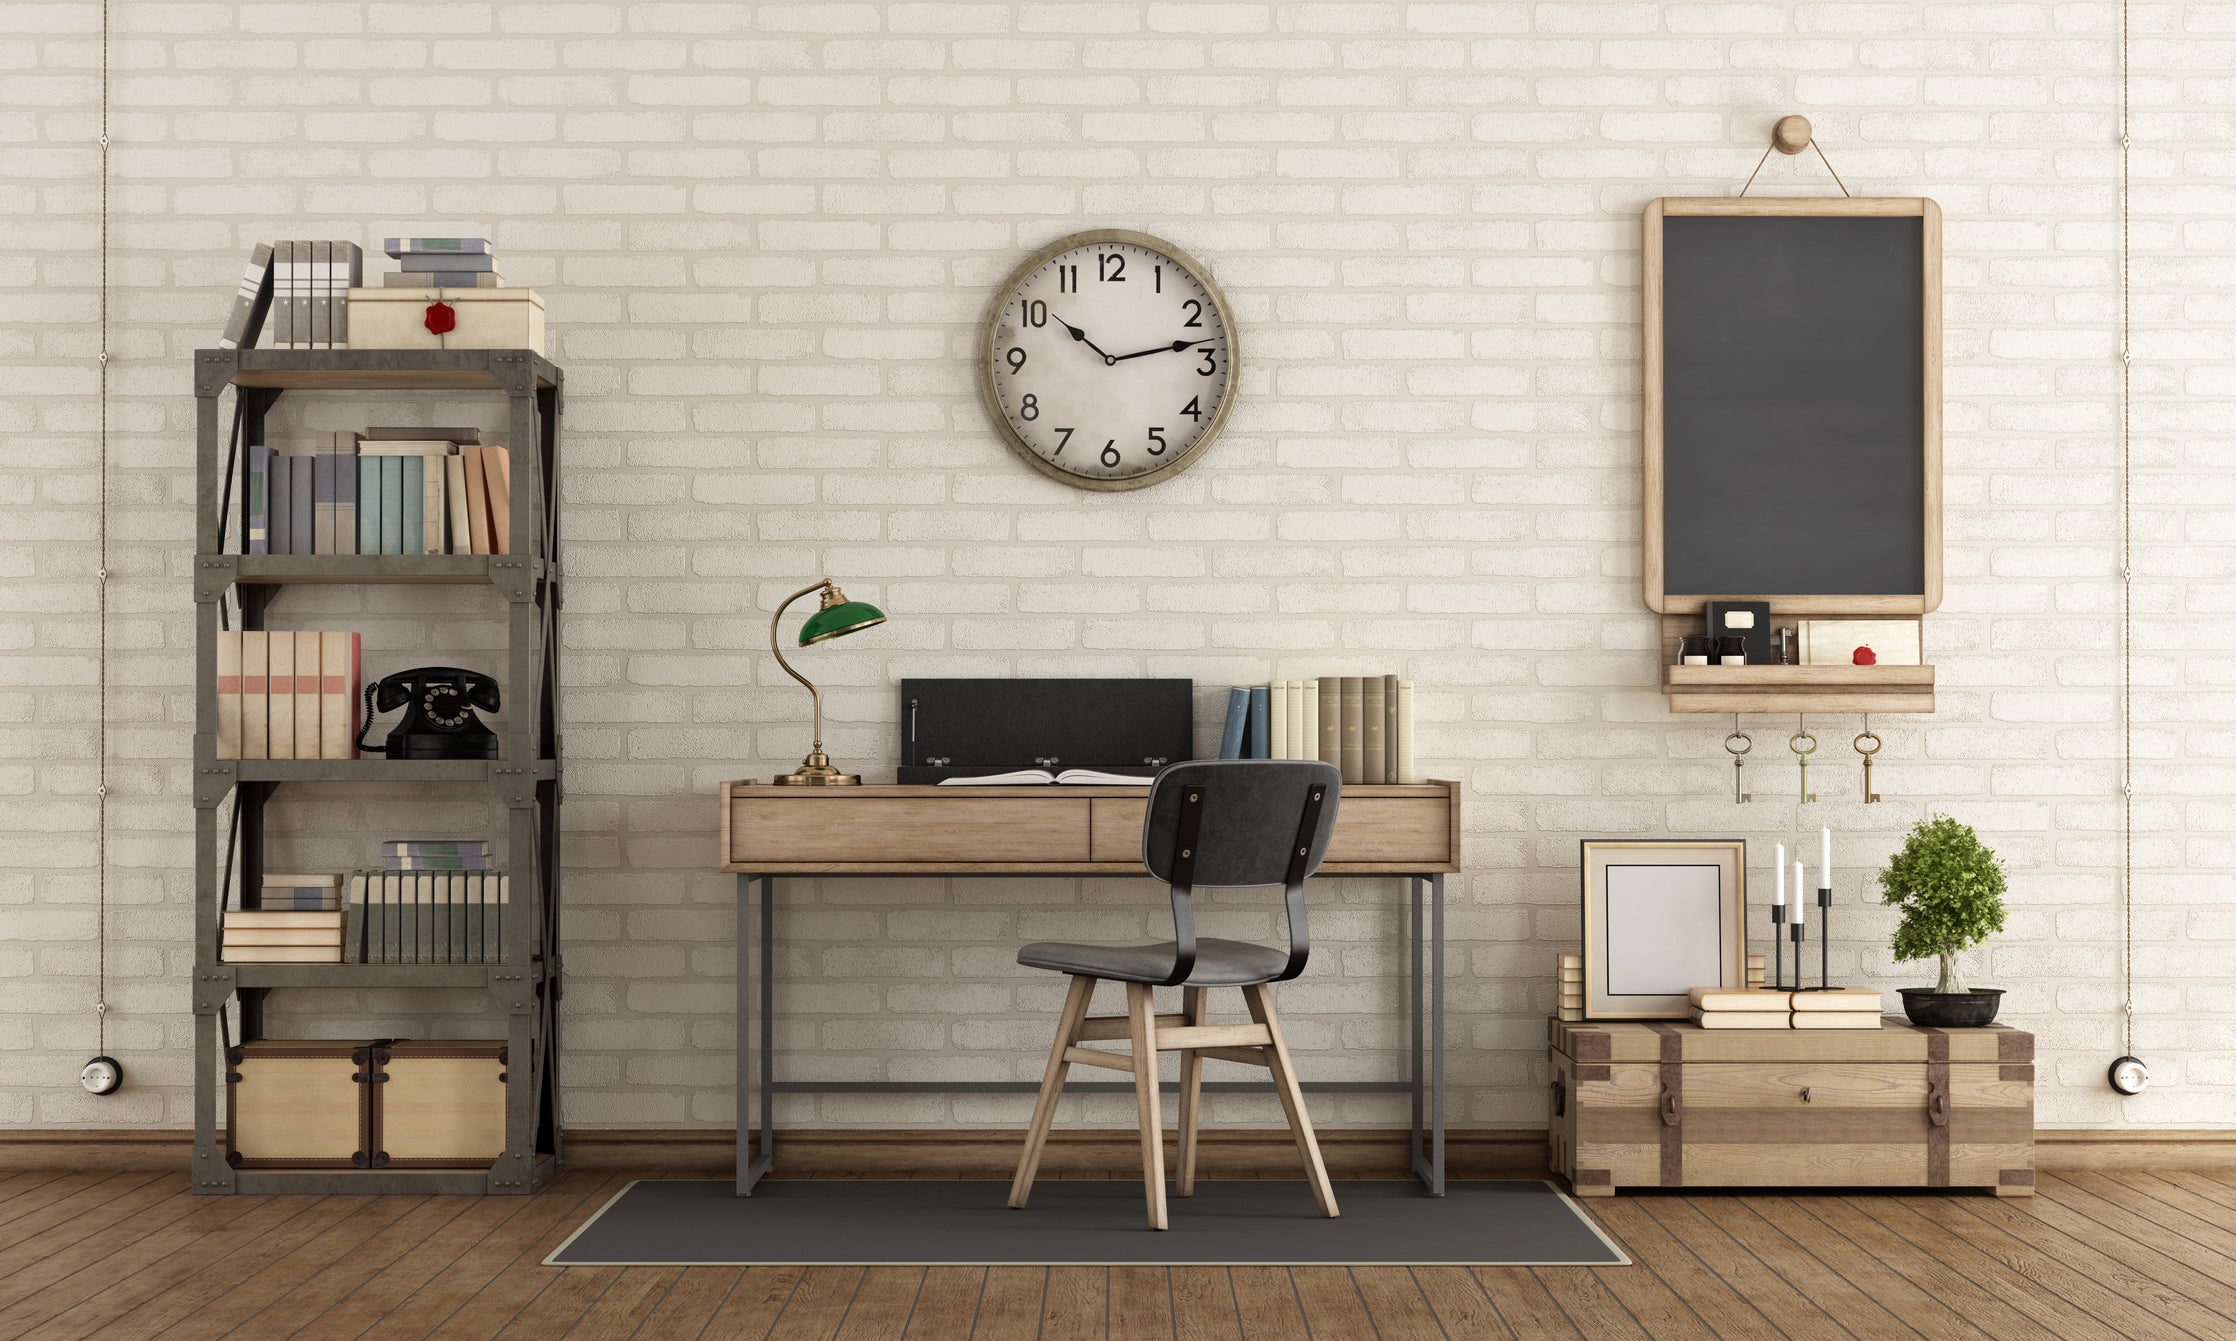 Industrial style home office with funky accessories and large clock on the white brick wall